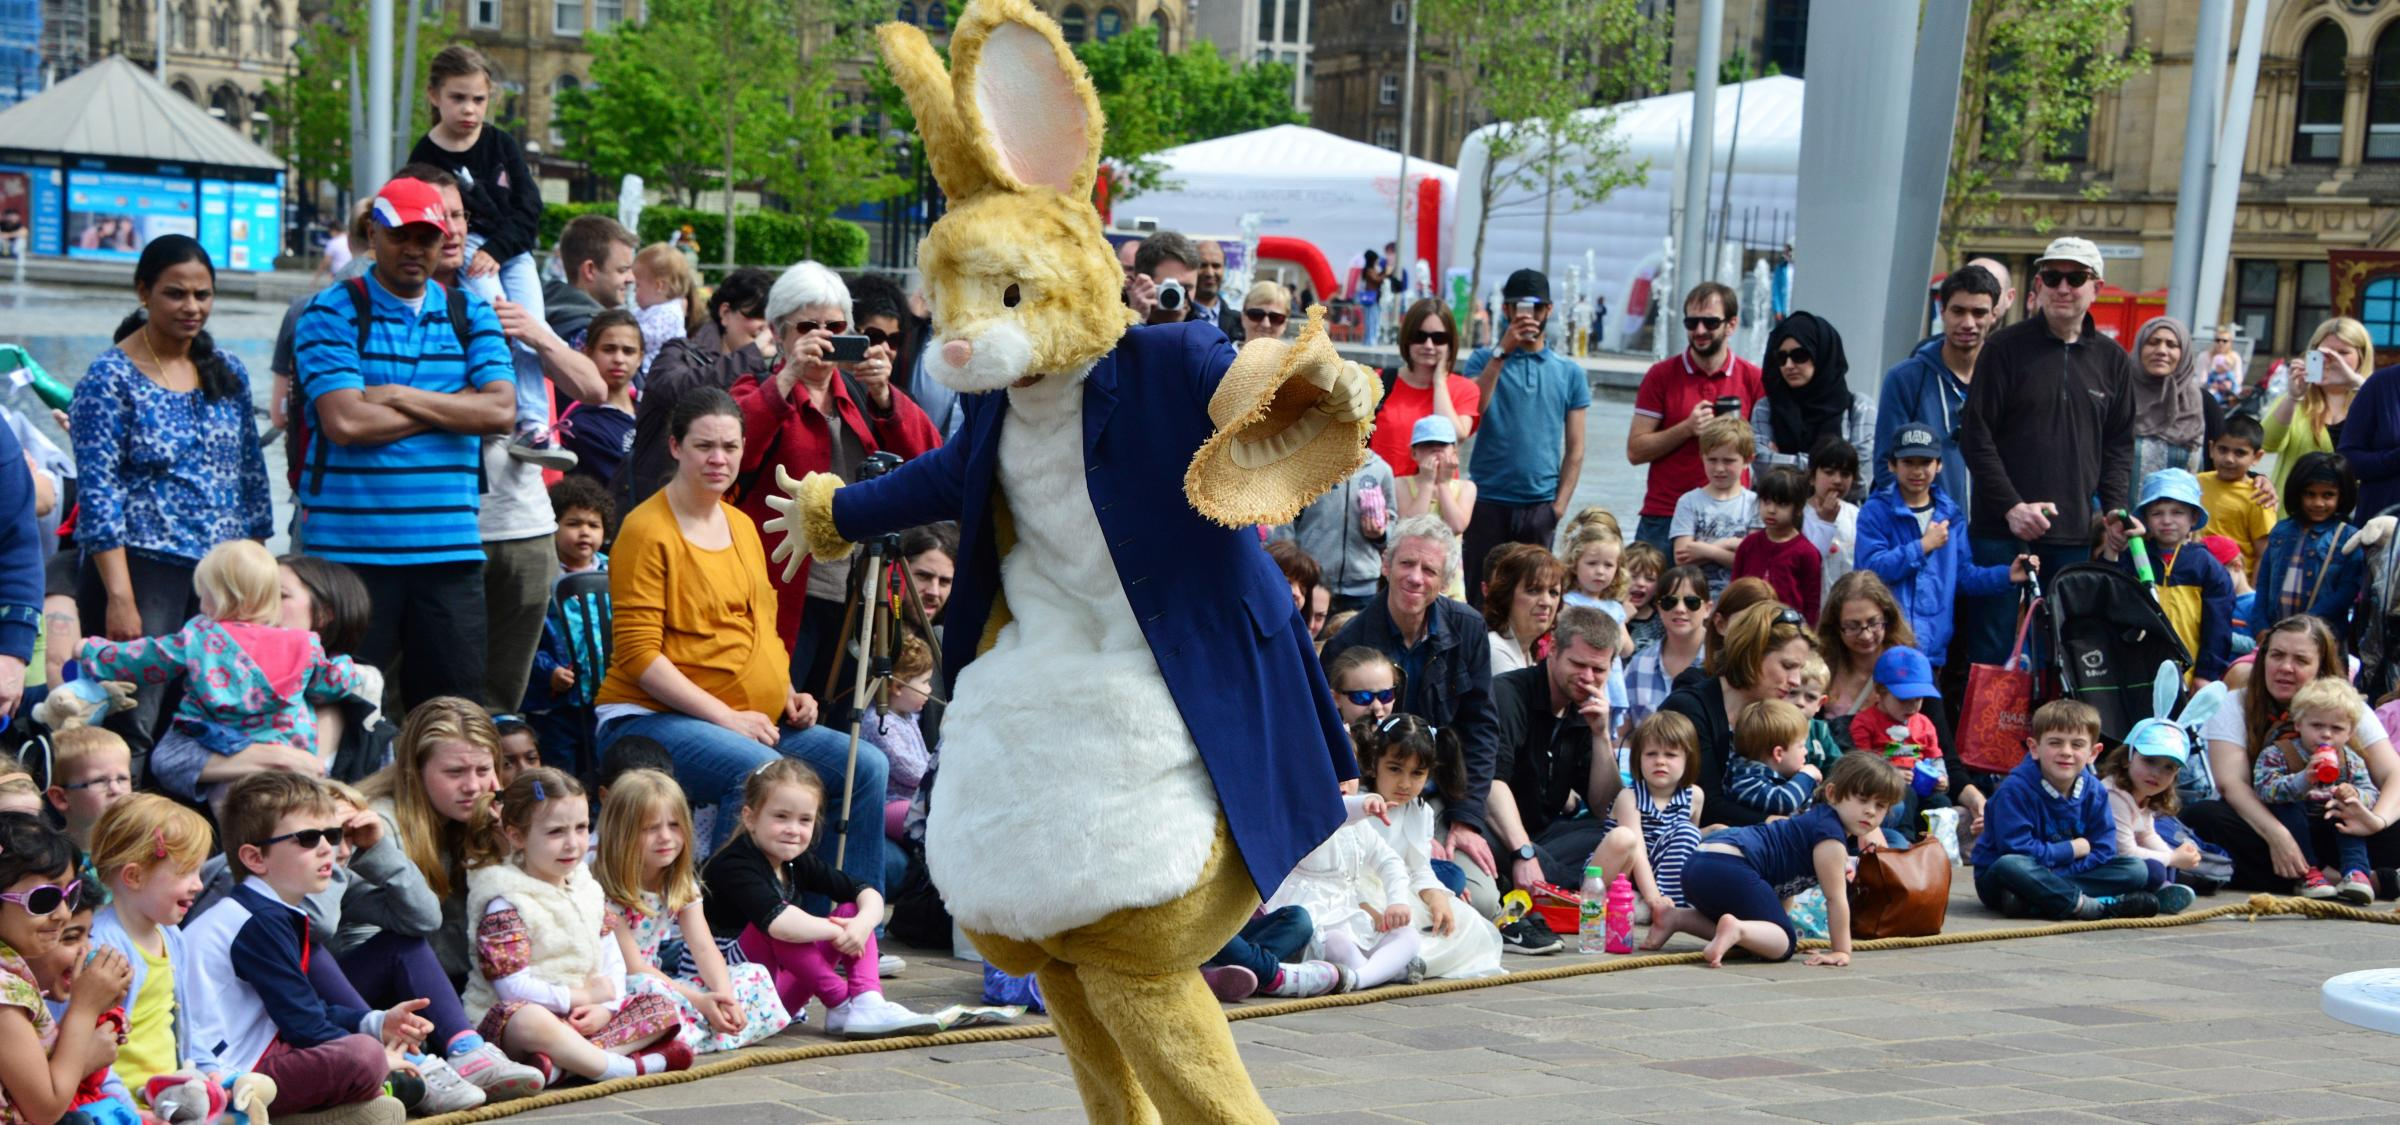 Peter Rabbit entertains crowds at the Bradford Literature Festival